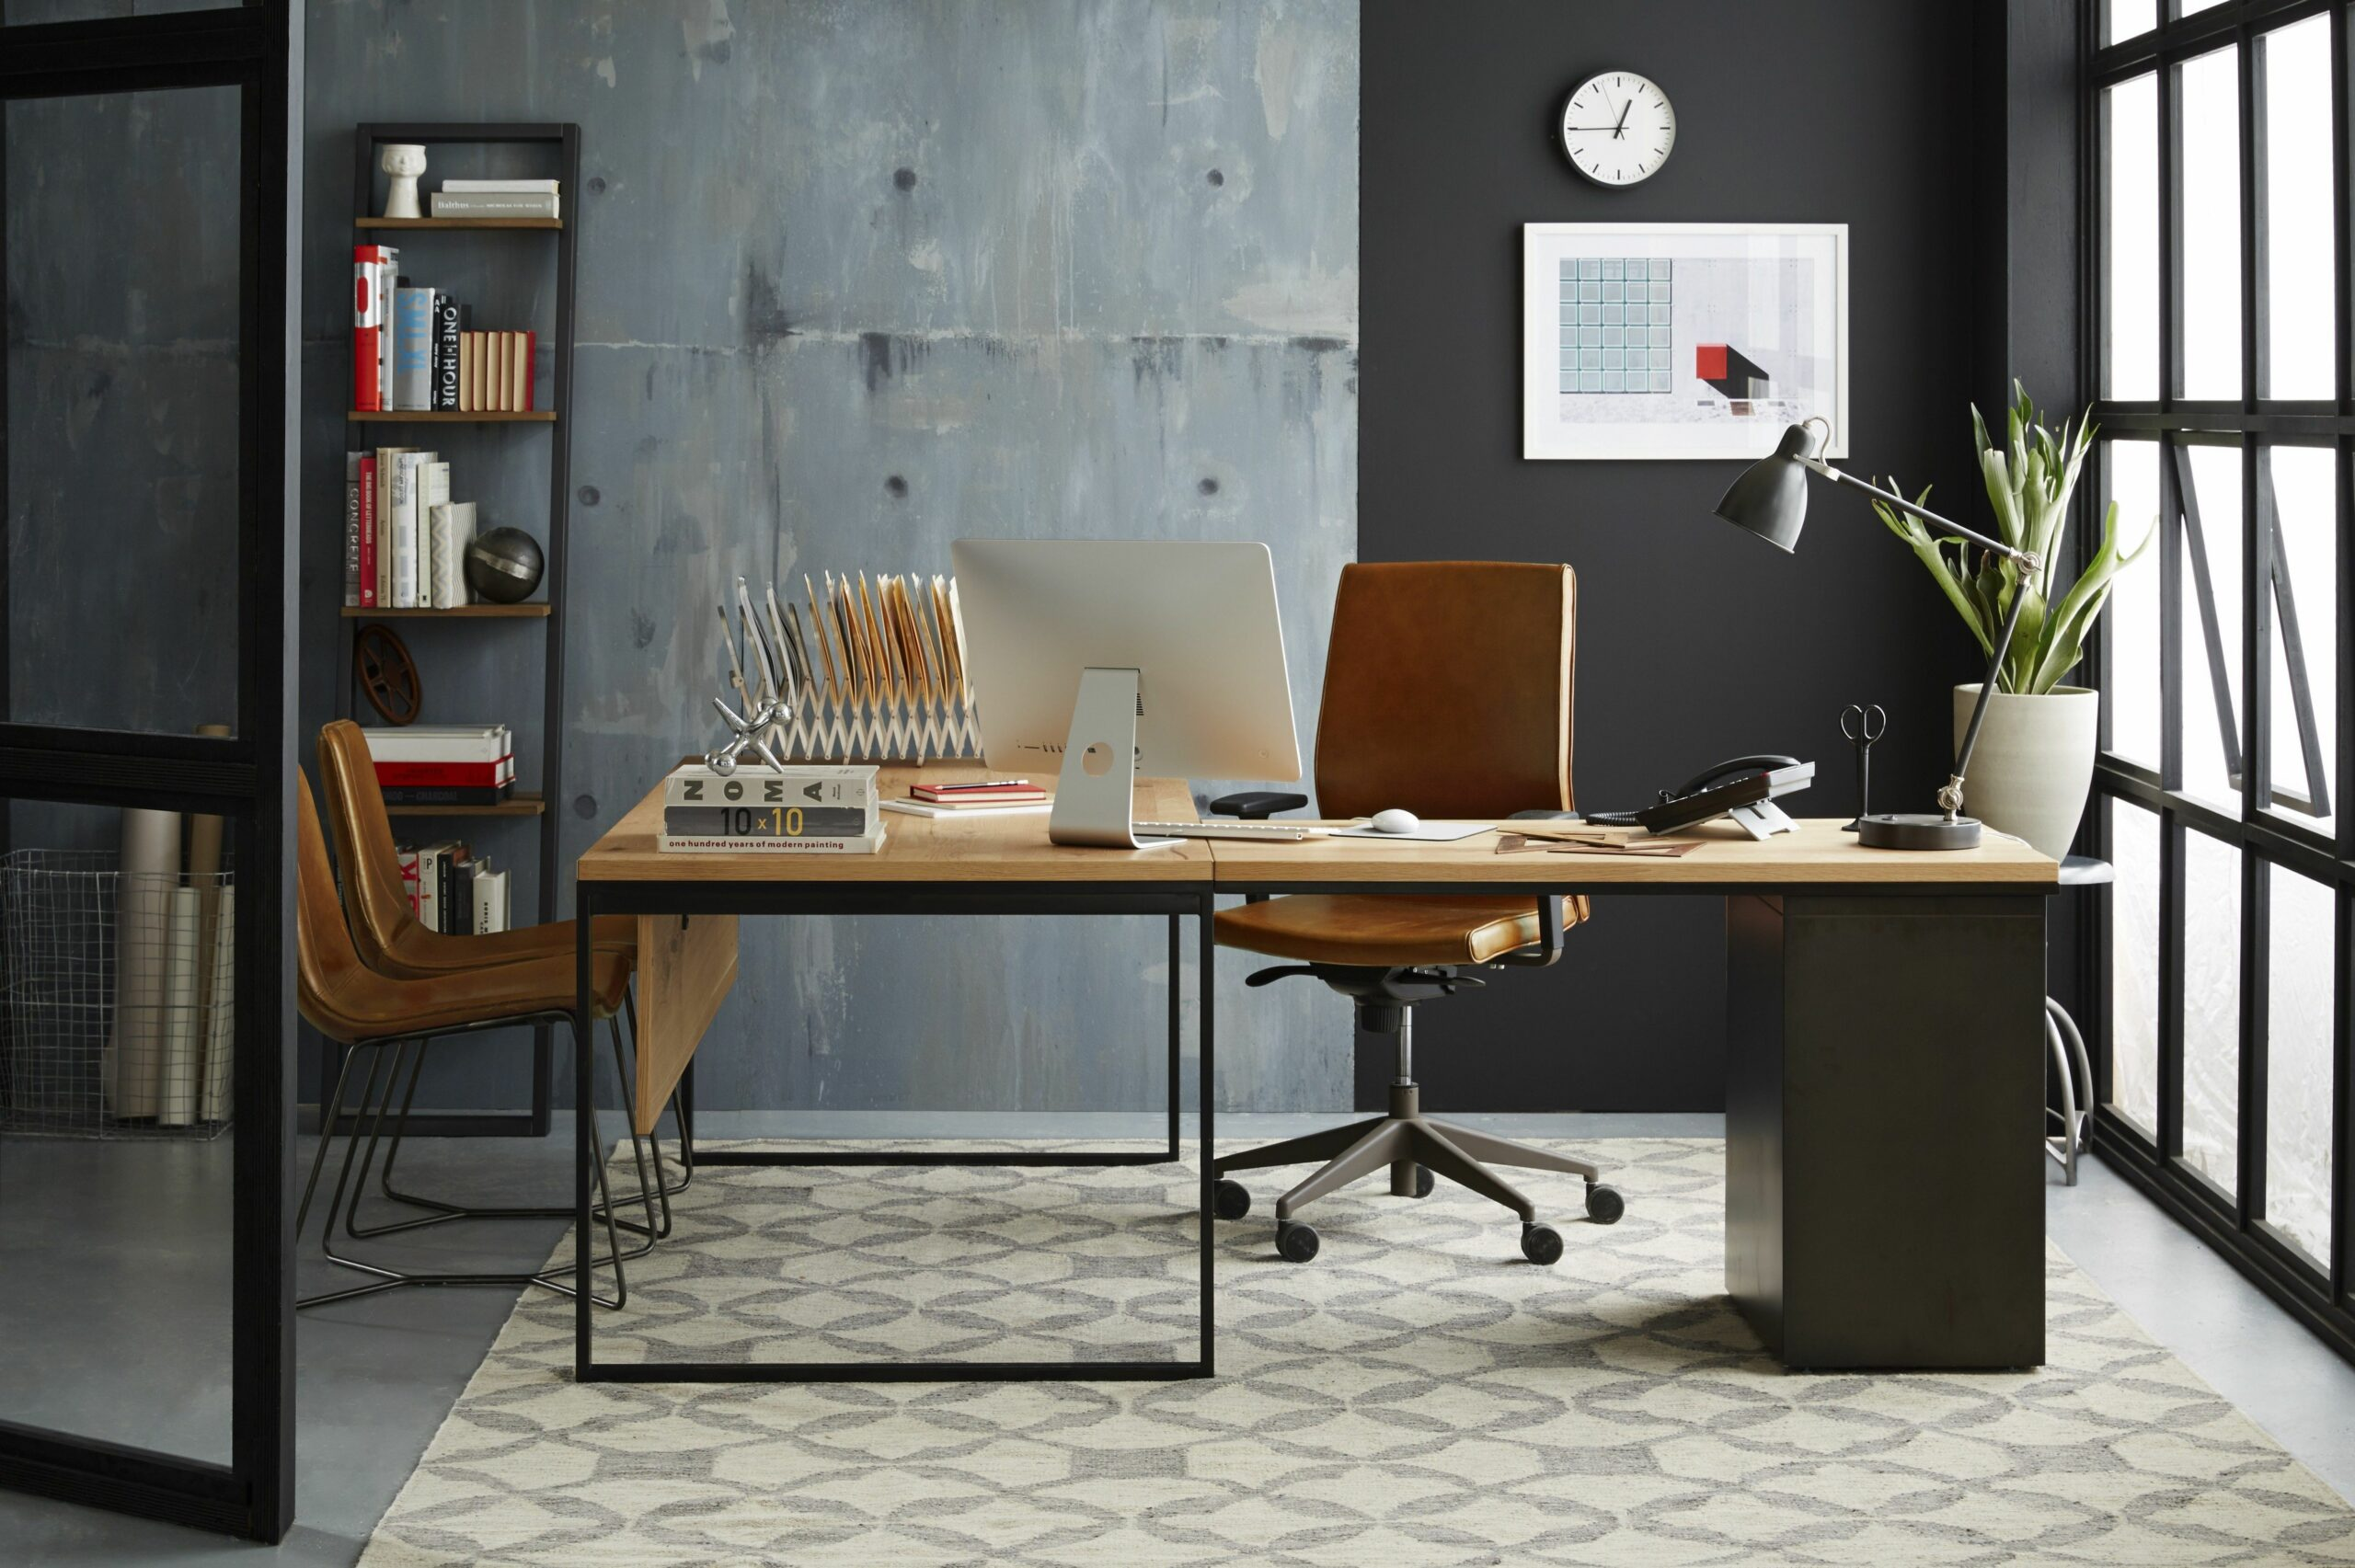 West Elm Office Furniture Chair Spotlight On West Elm Workspaces ..